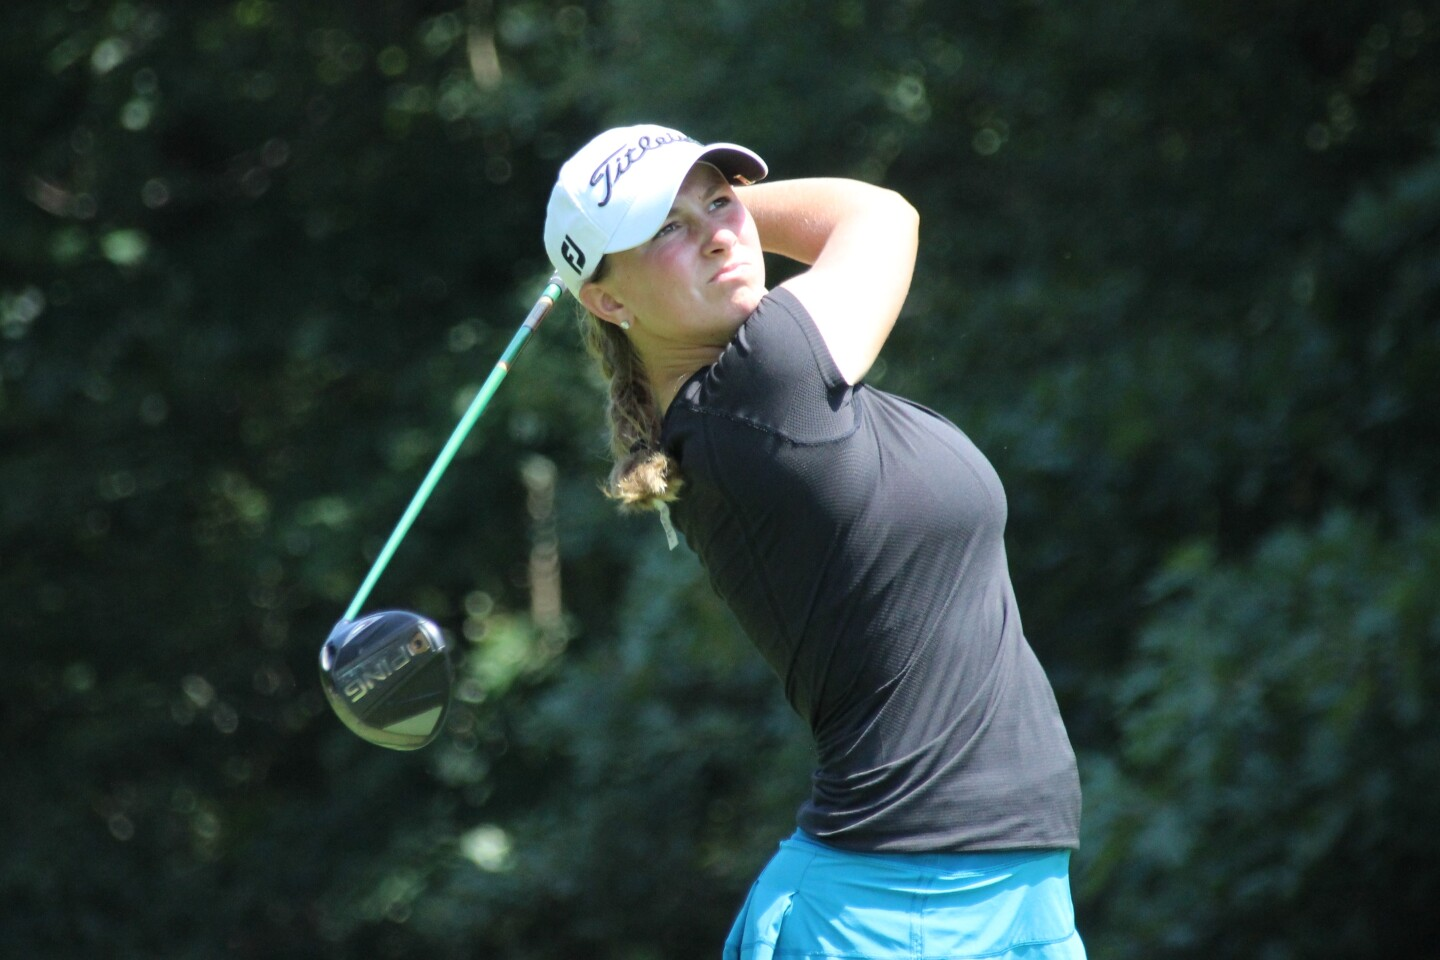 Jennifer Cleary Second Round Action Shot - 2019 - AJGA Junior at Chicopee presented by John D. Mineck Foundation.JPG